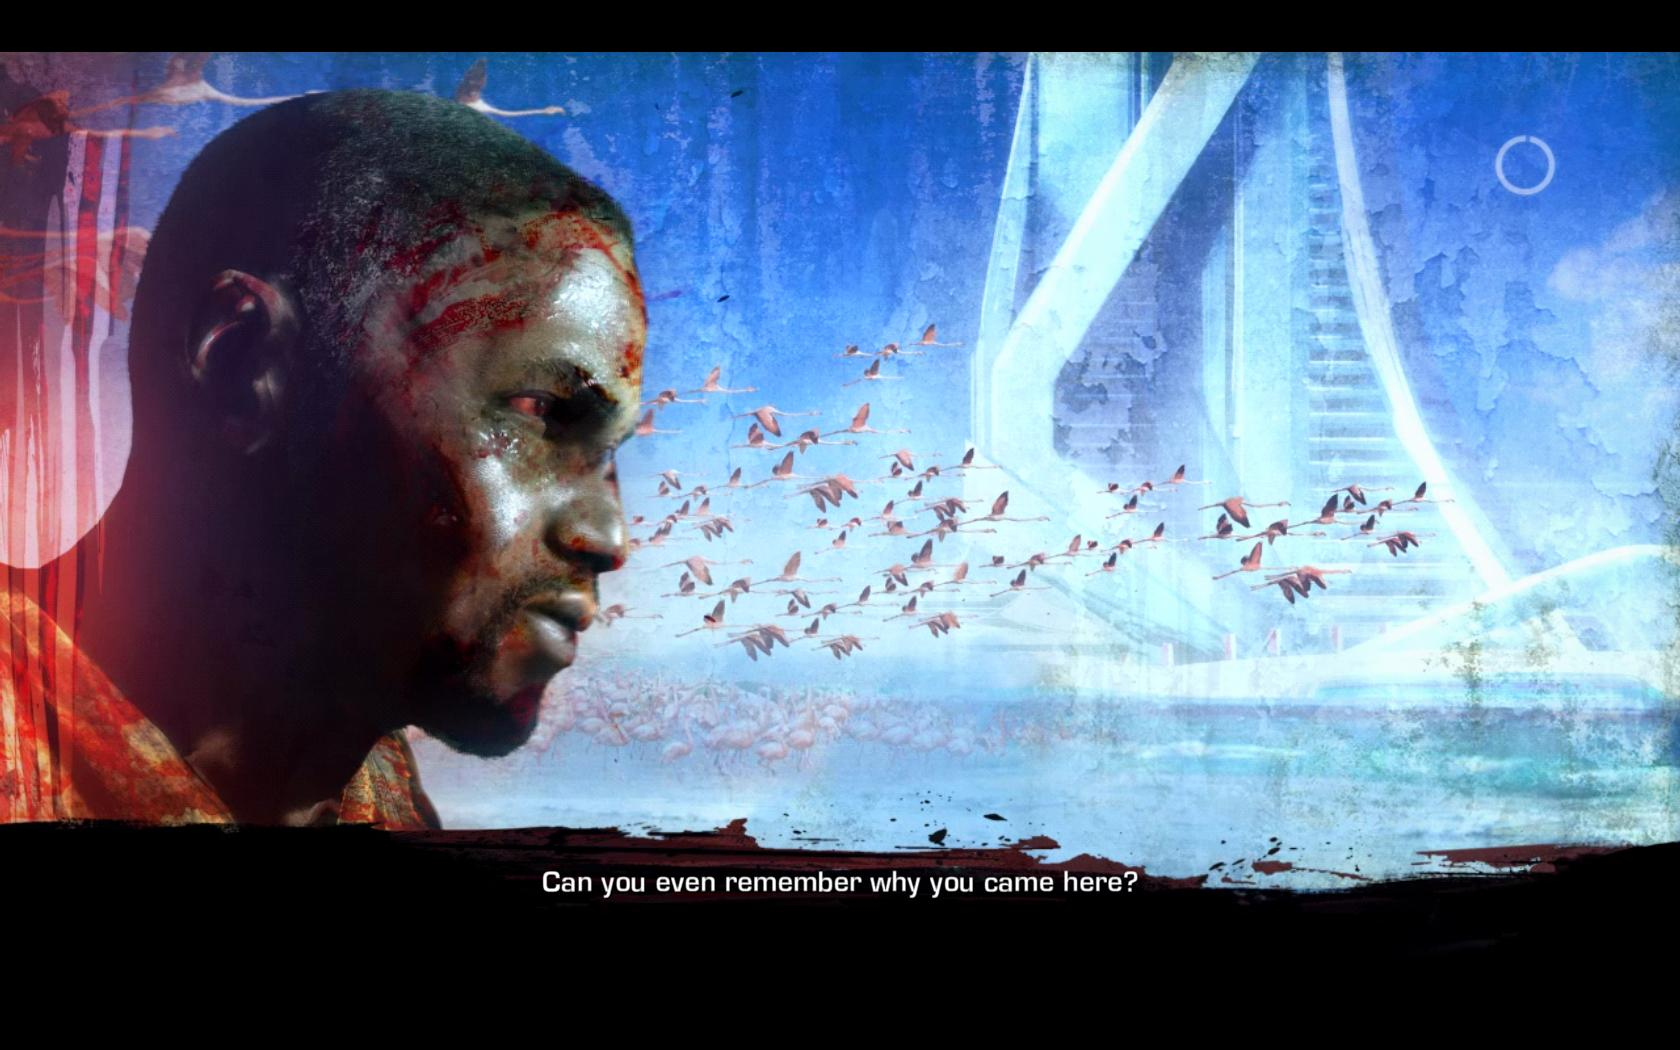 Spec Ops: The Line - This Changes Everything